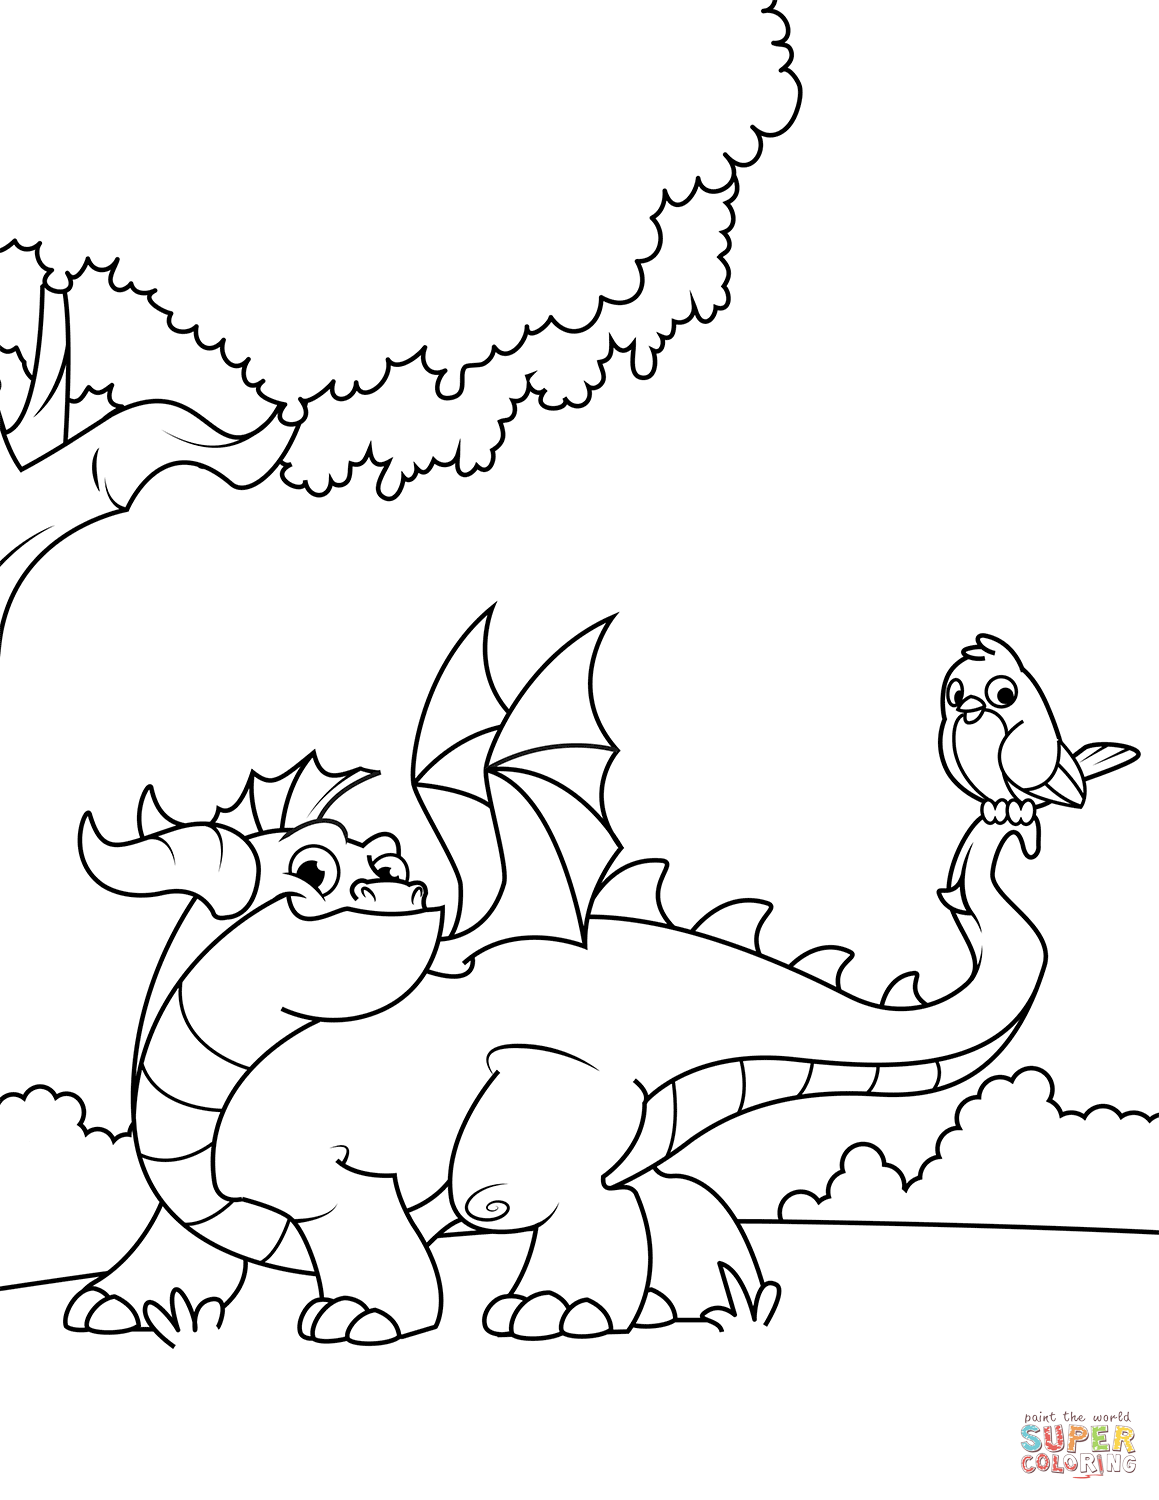 coloring pages of cute dragons interactive magazine cute dragon coloring pages coloring dragons cute of pages